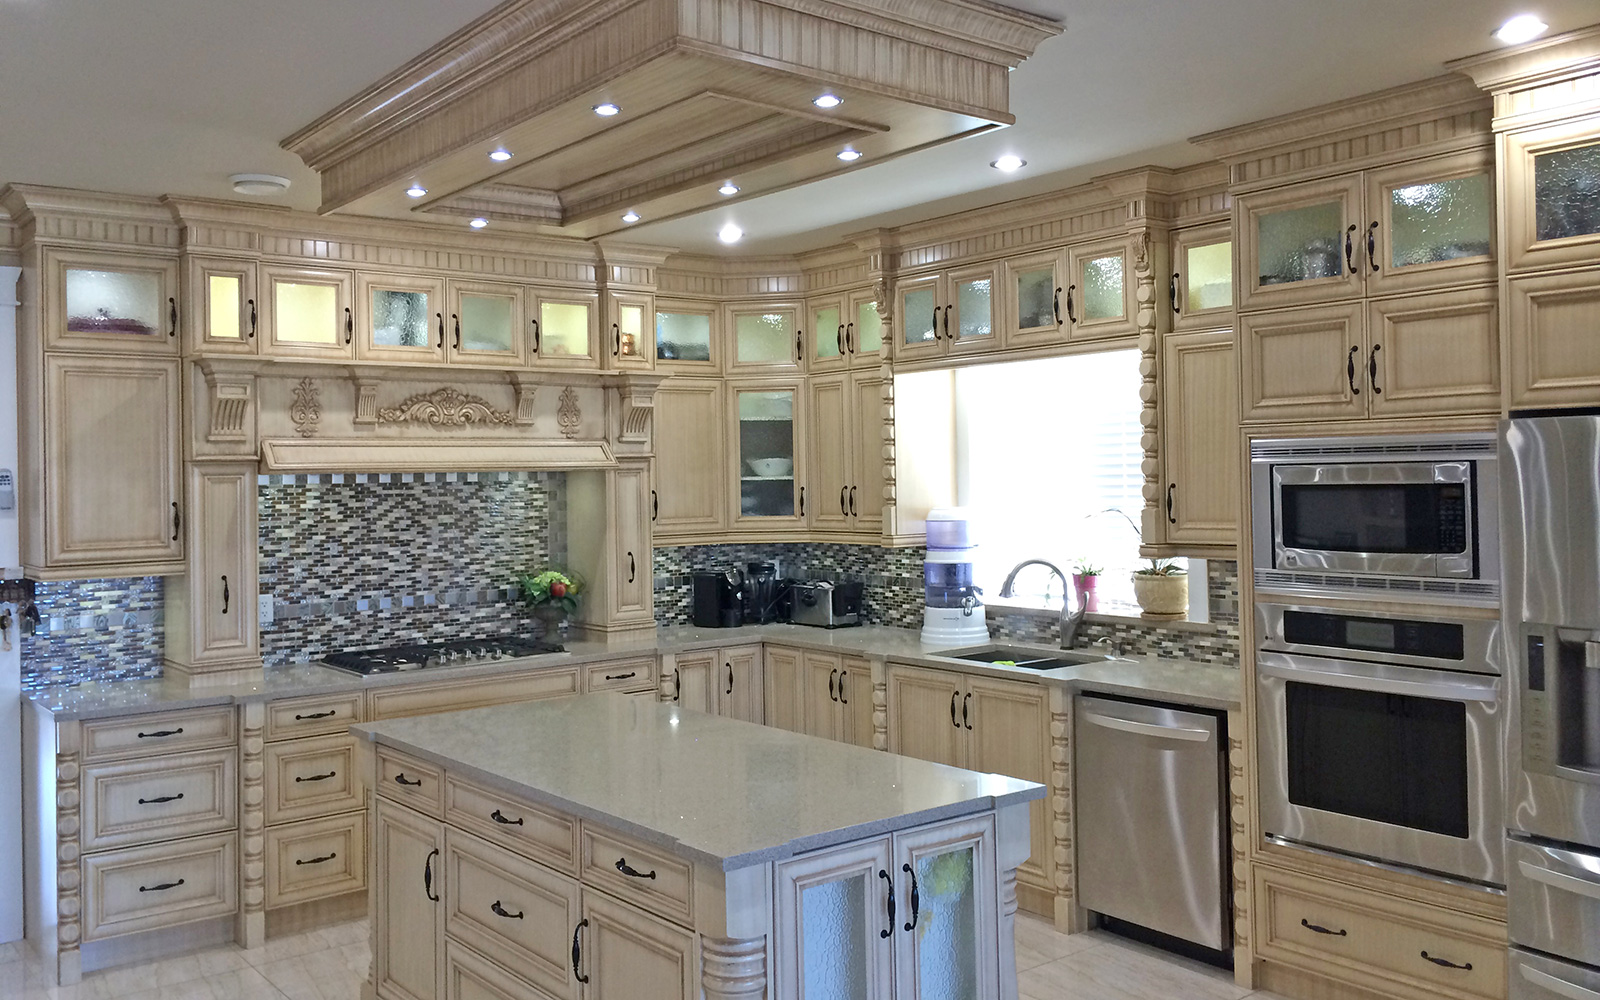 Calgary custom kitchen cabinets ltd countertops Newwood cupboards